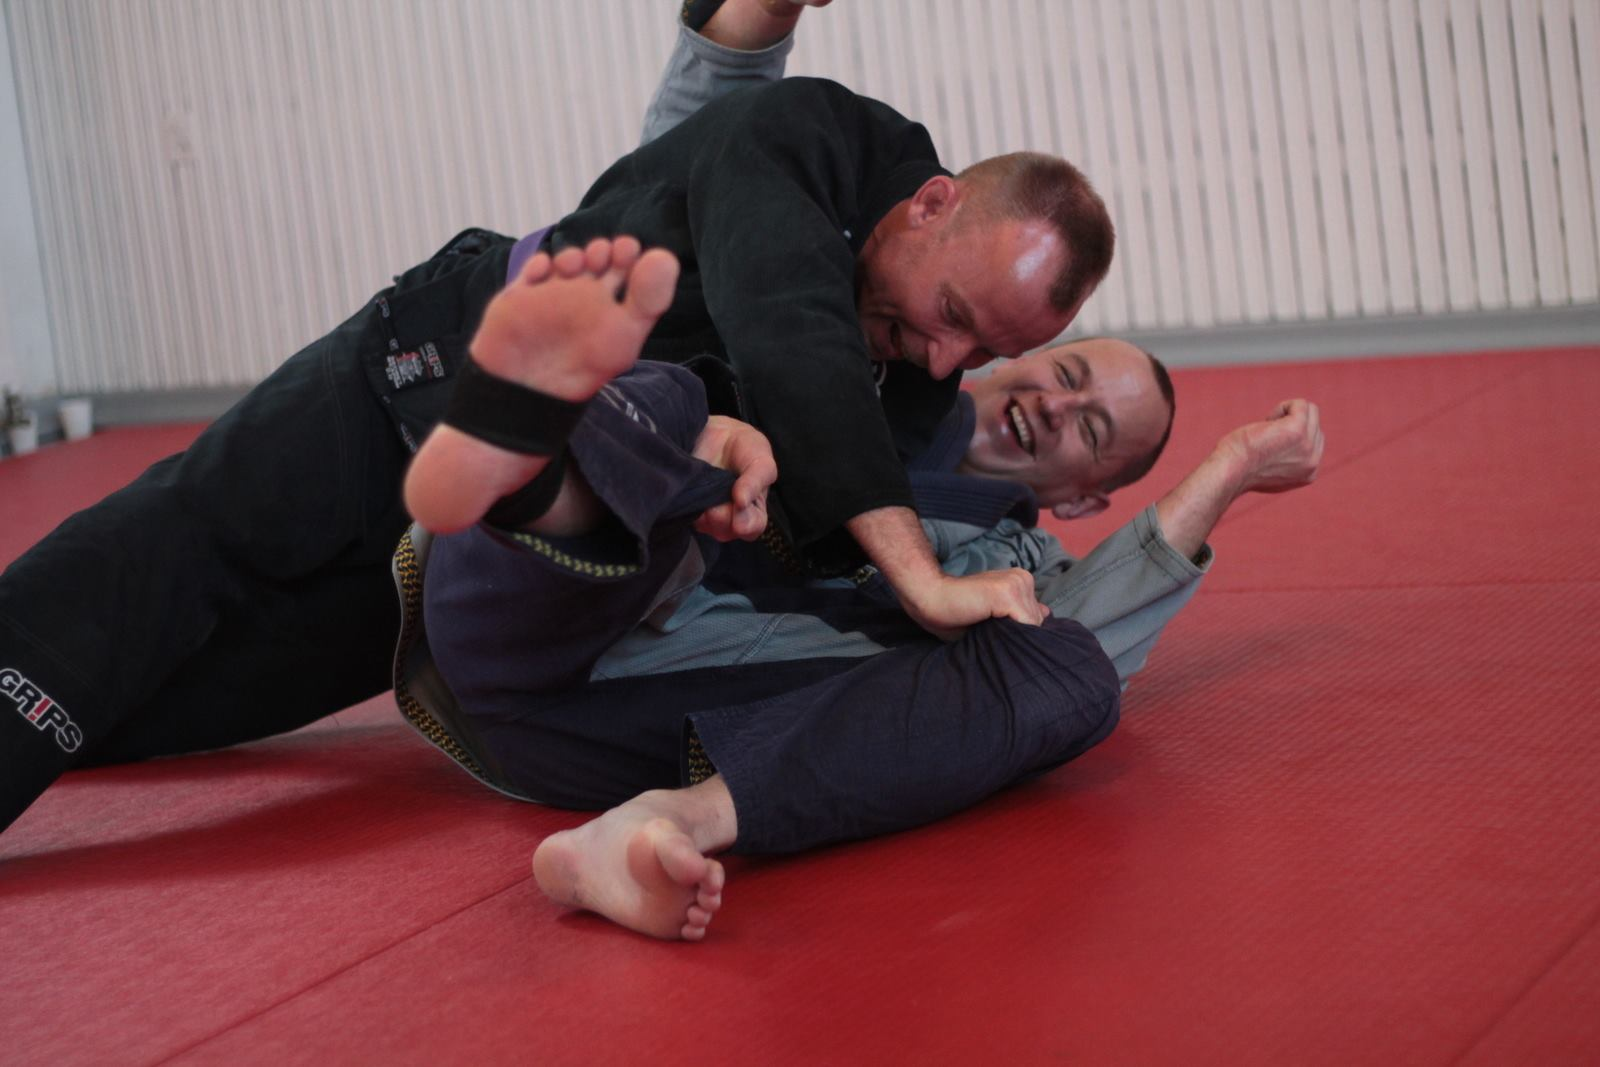 Researchers Find Jiu-Jitsu Practitioners To Be Least Aggressive Martial Artists